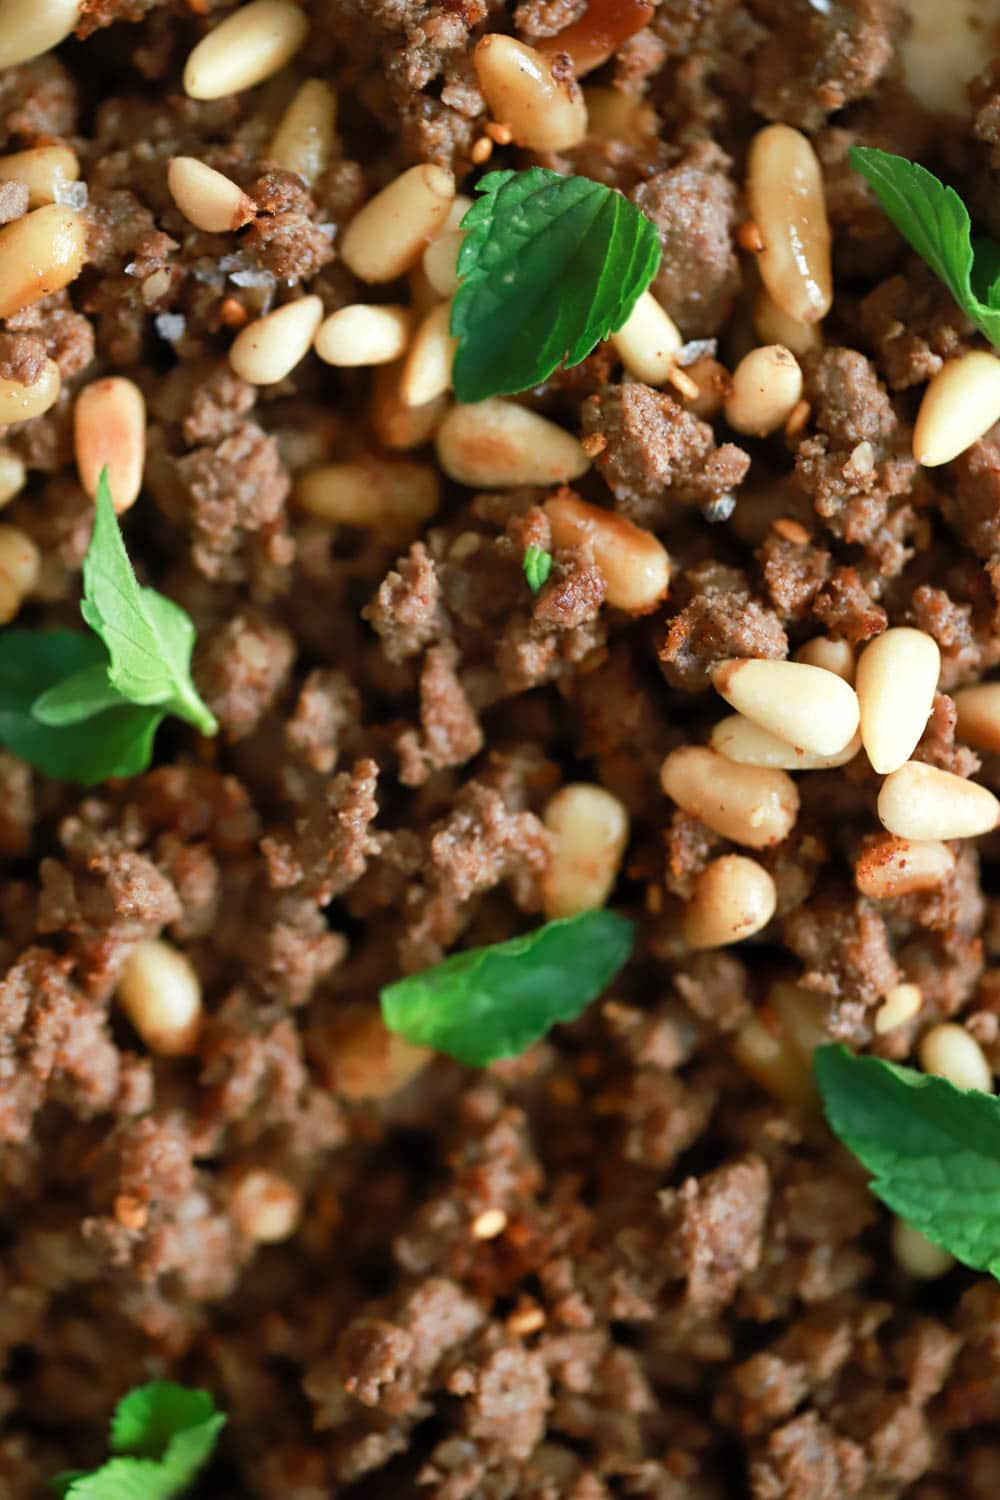 Spiced Ground Meat with Pine Nuts over Hummus Recipe